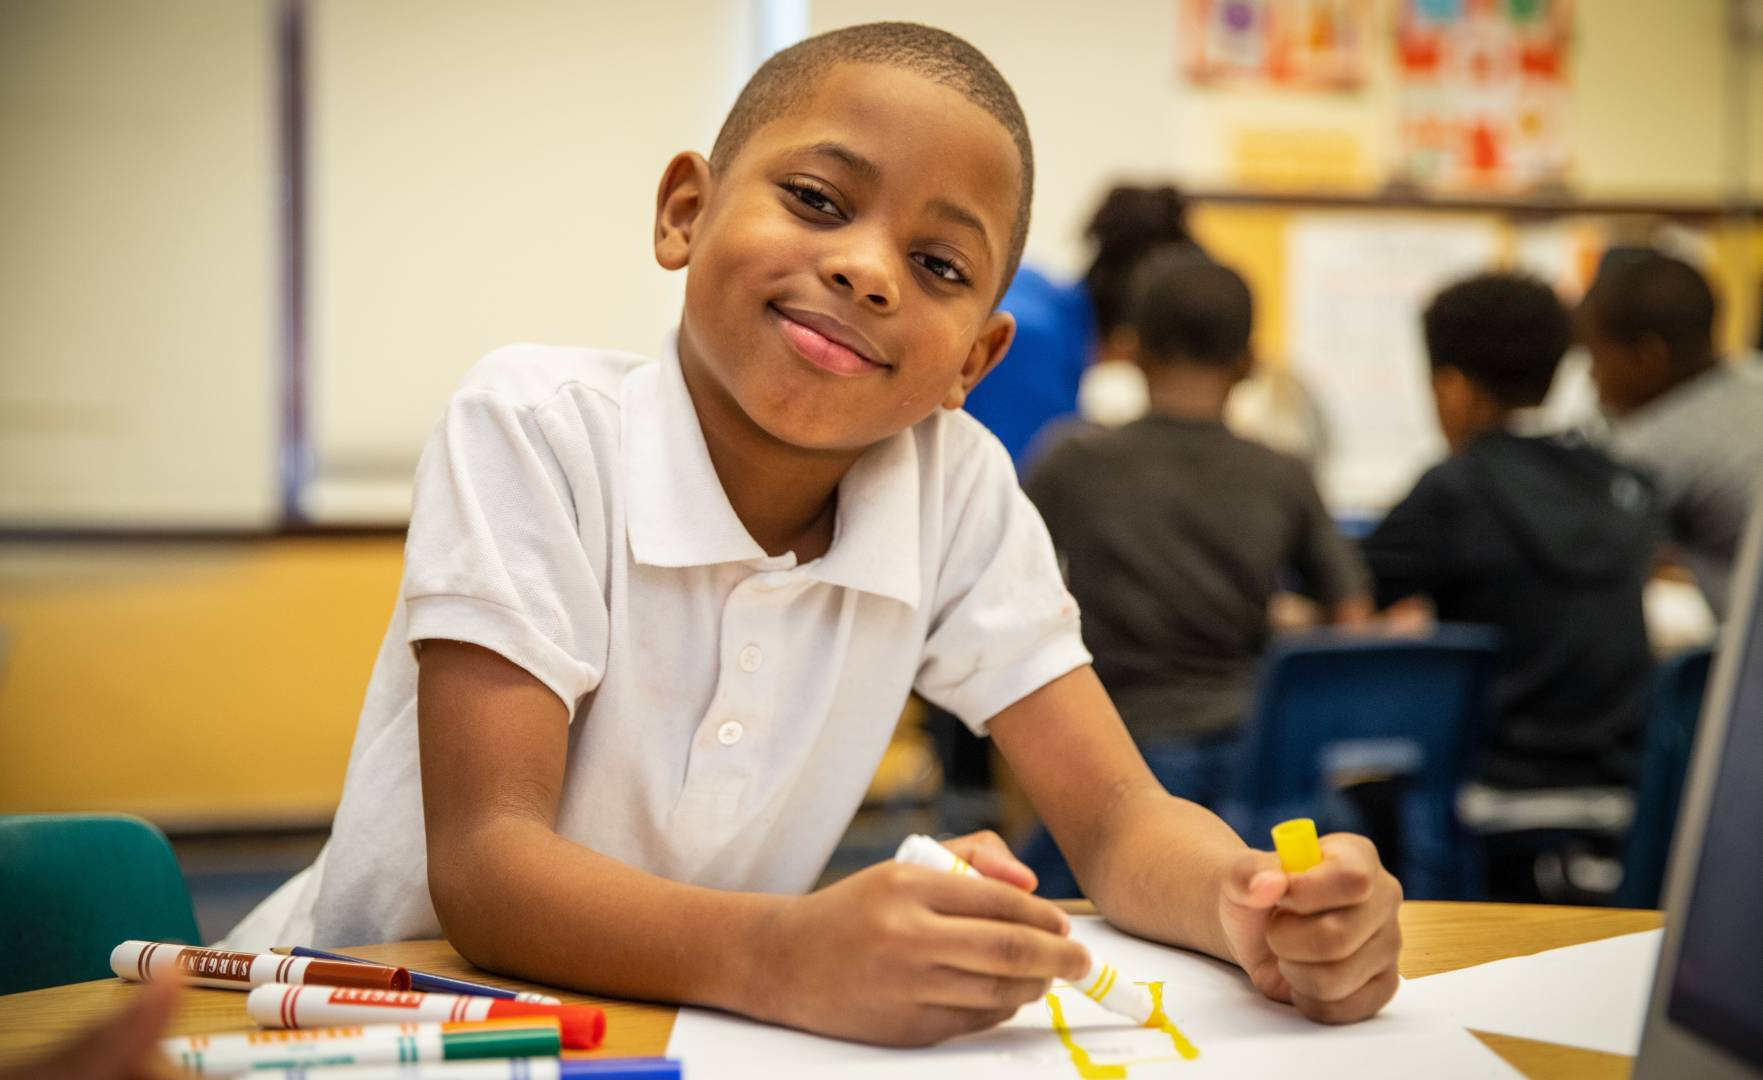 A student uses school supplies from World Vision in an art class at a Chicago elementary school.